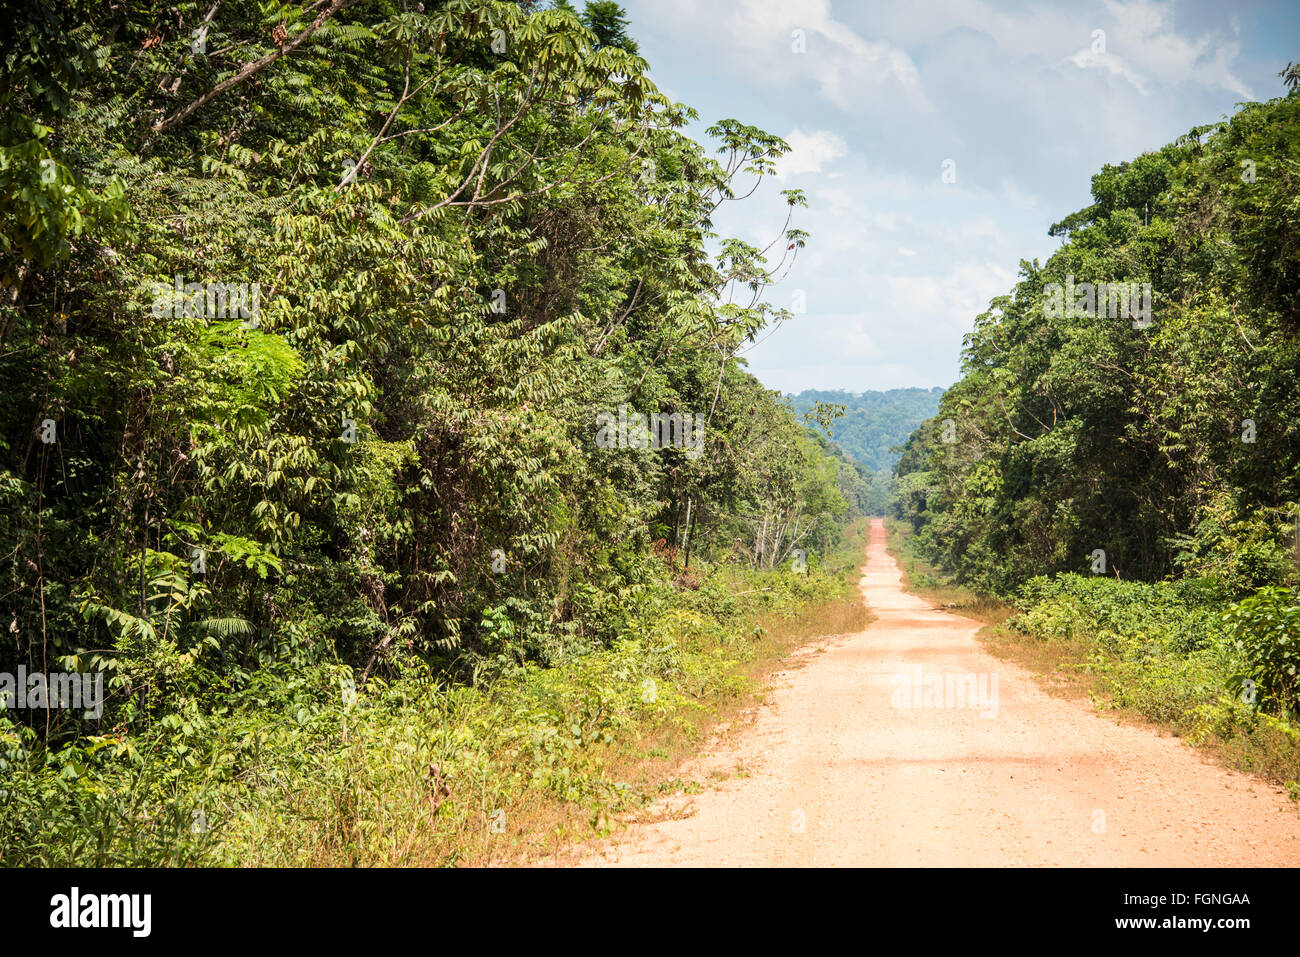 Rough Road through the Jungle, Guyana - Stock Image